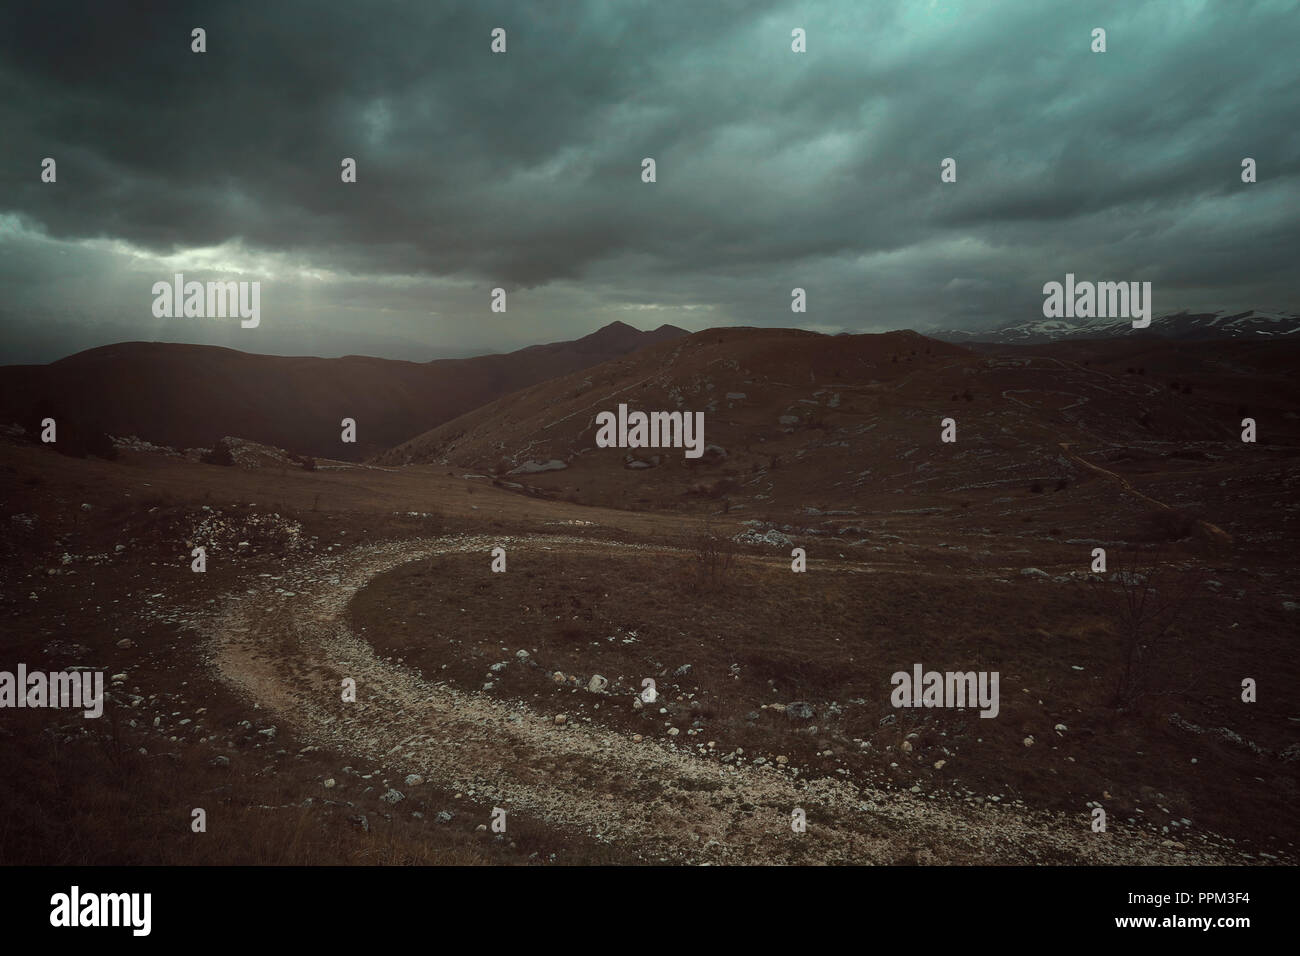 Desolate landscape in Abruzzo. Italy - Stock Image